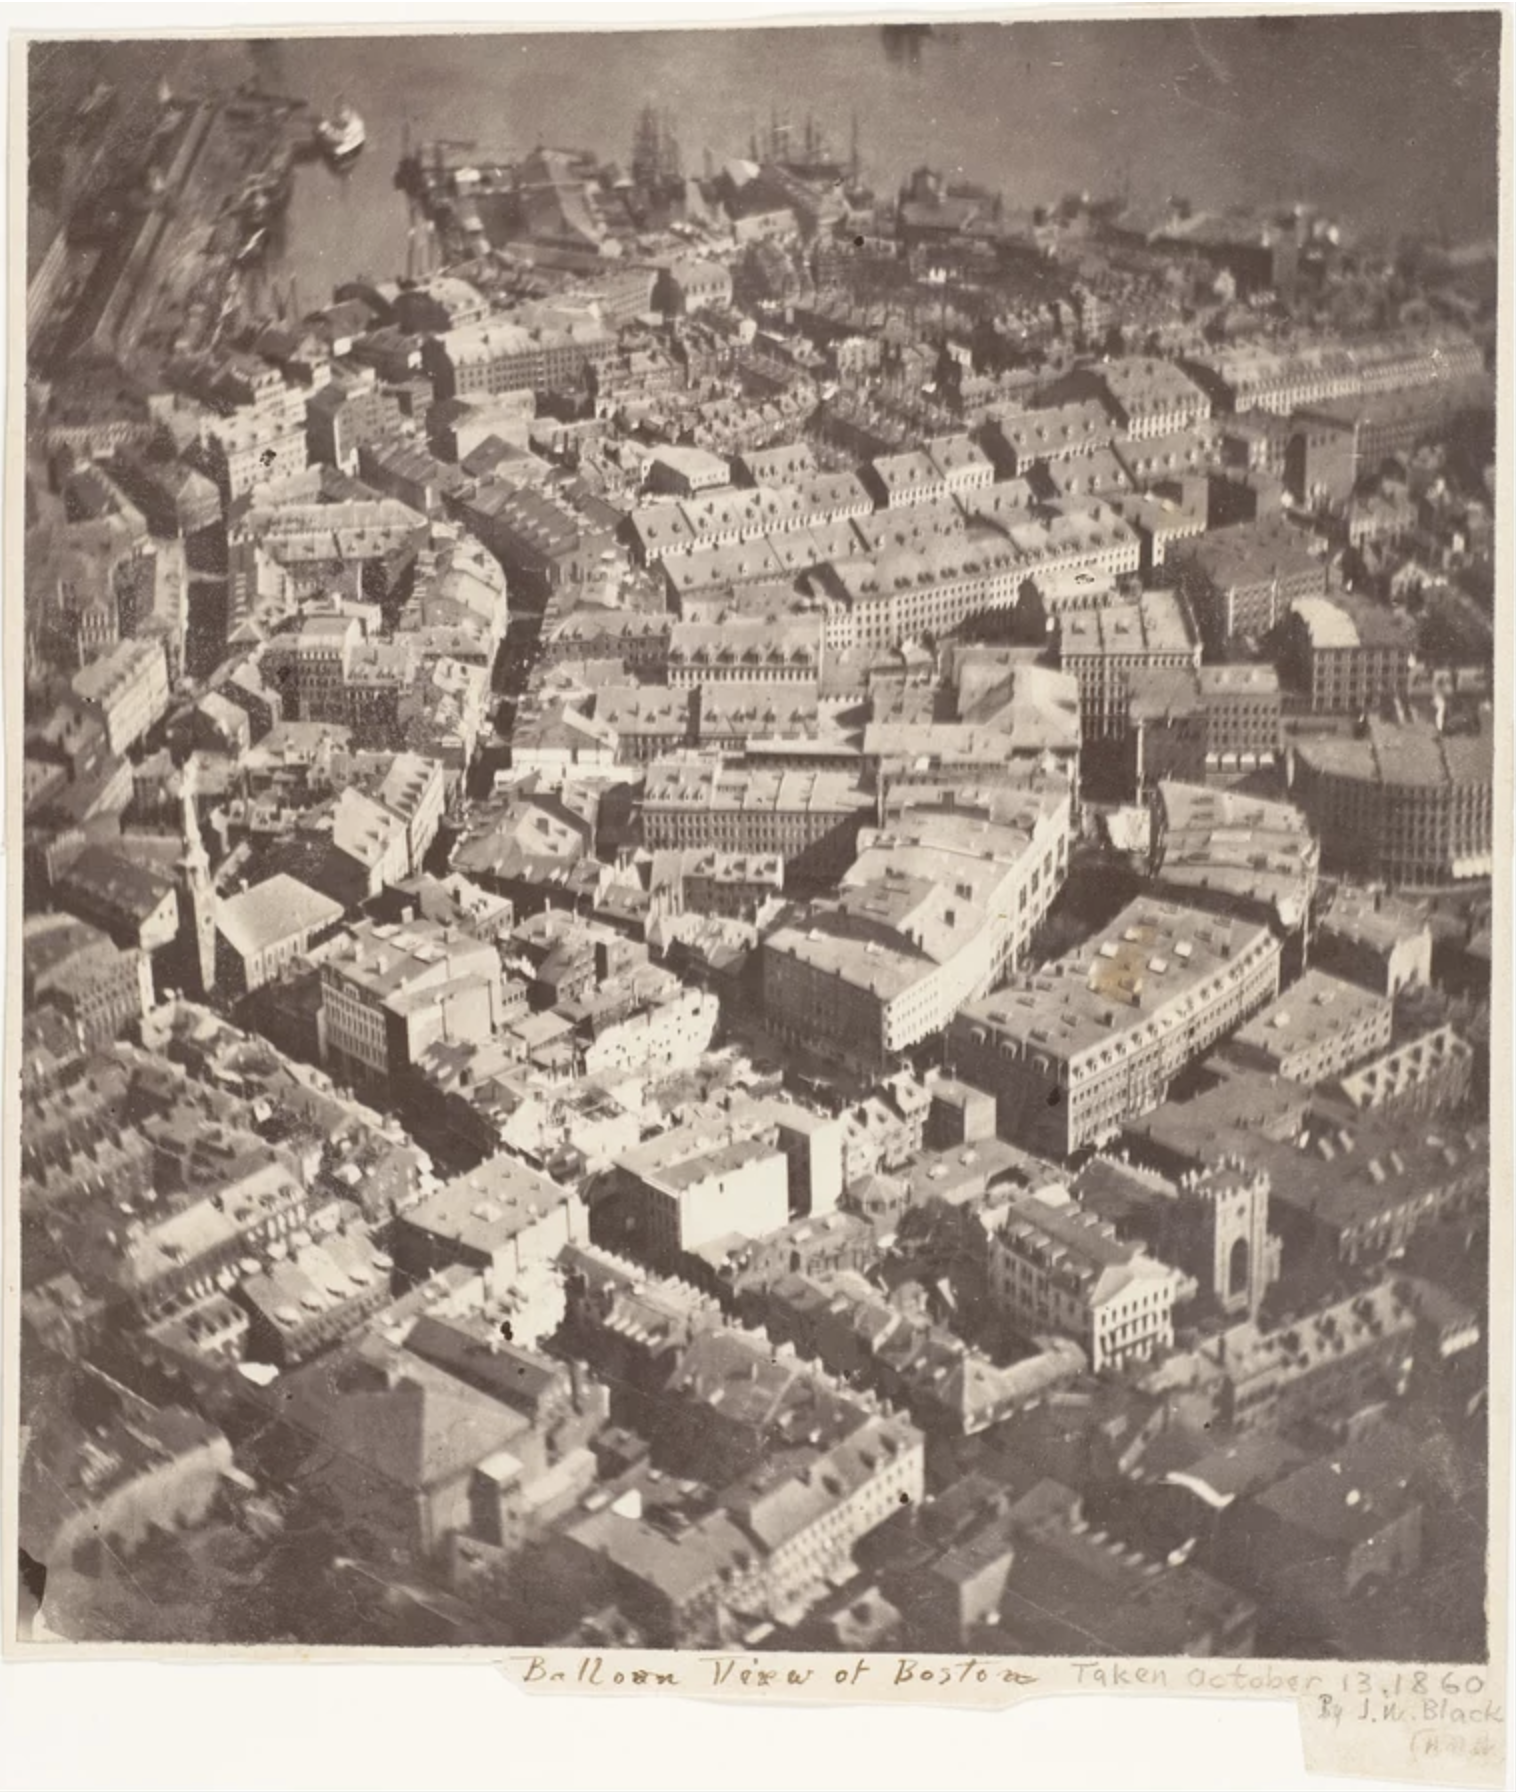 The oldest aerial photograph by Joseph Wallace Black, October 1860